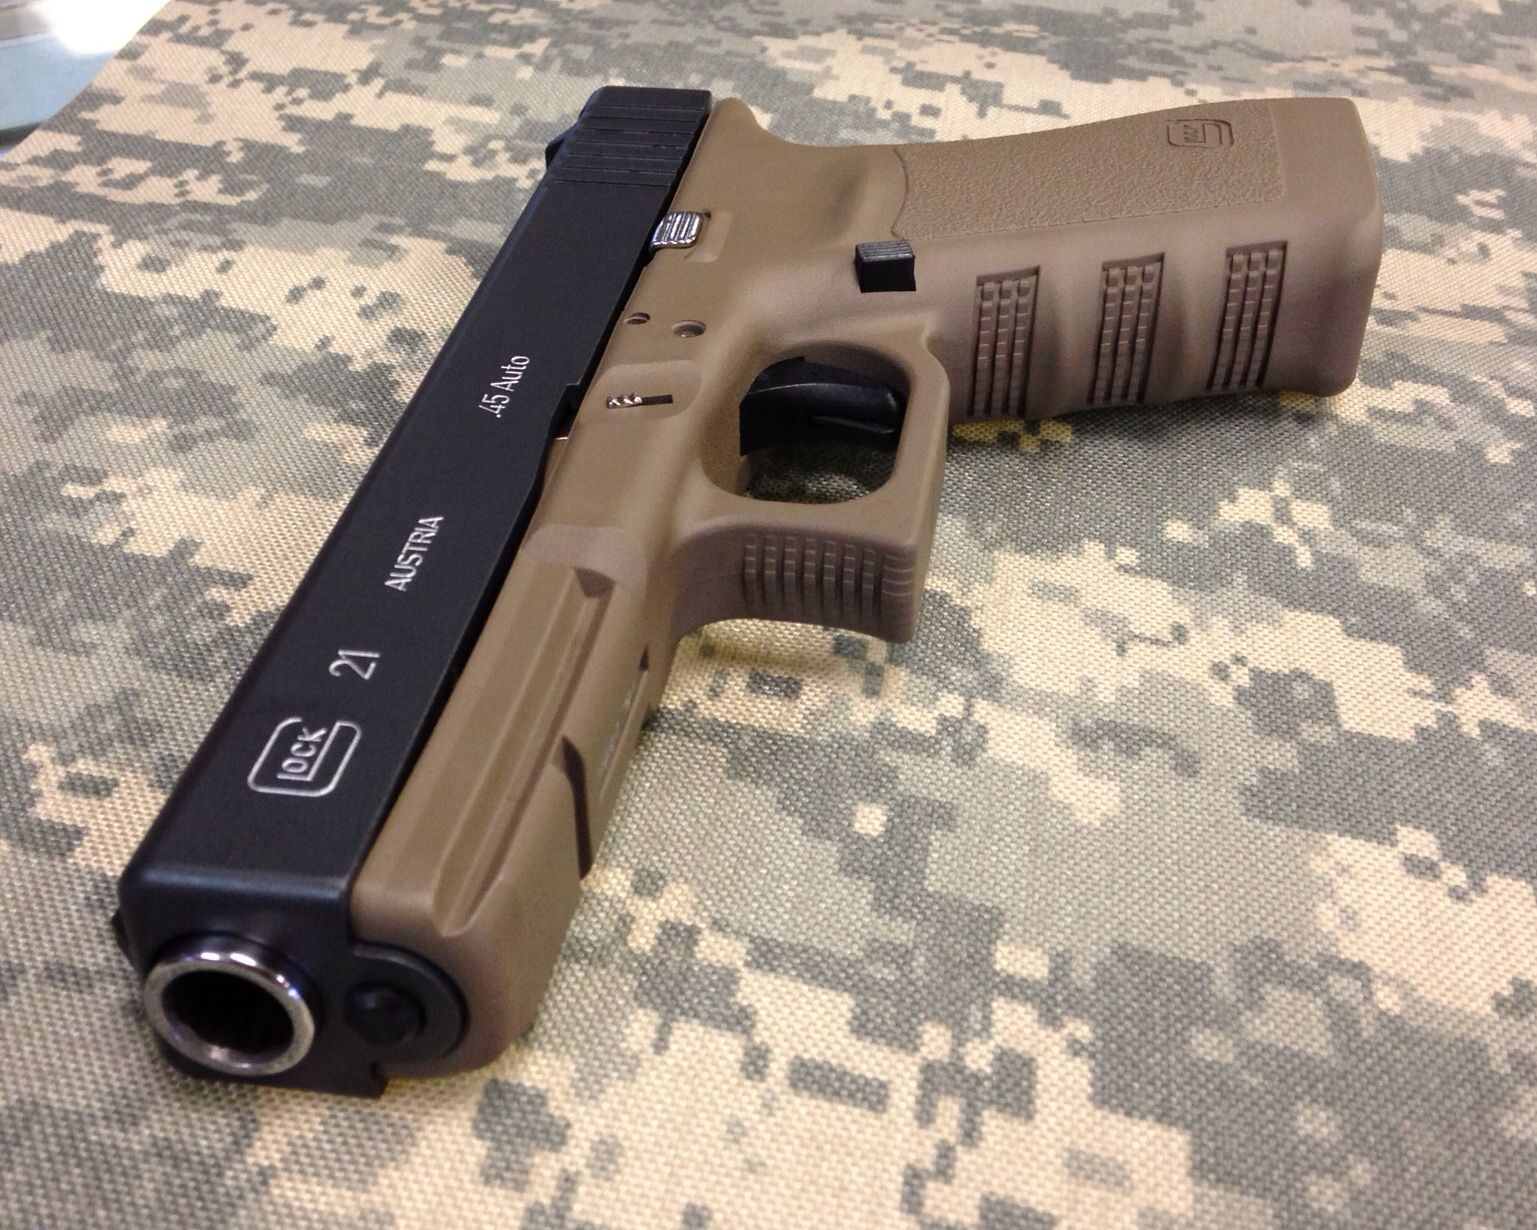 Glock 21 cerakoted Sniper Grey and FDE | Ar-15 and glock build up ...